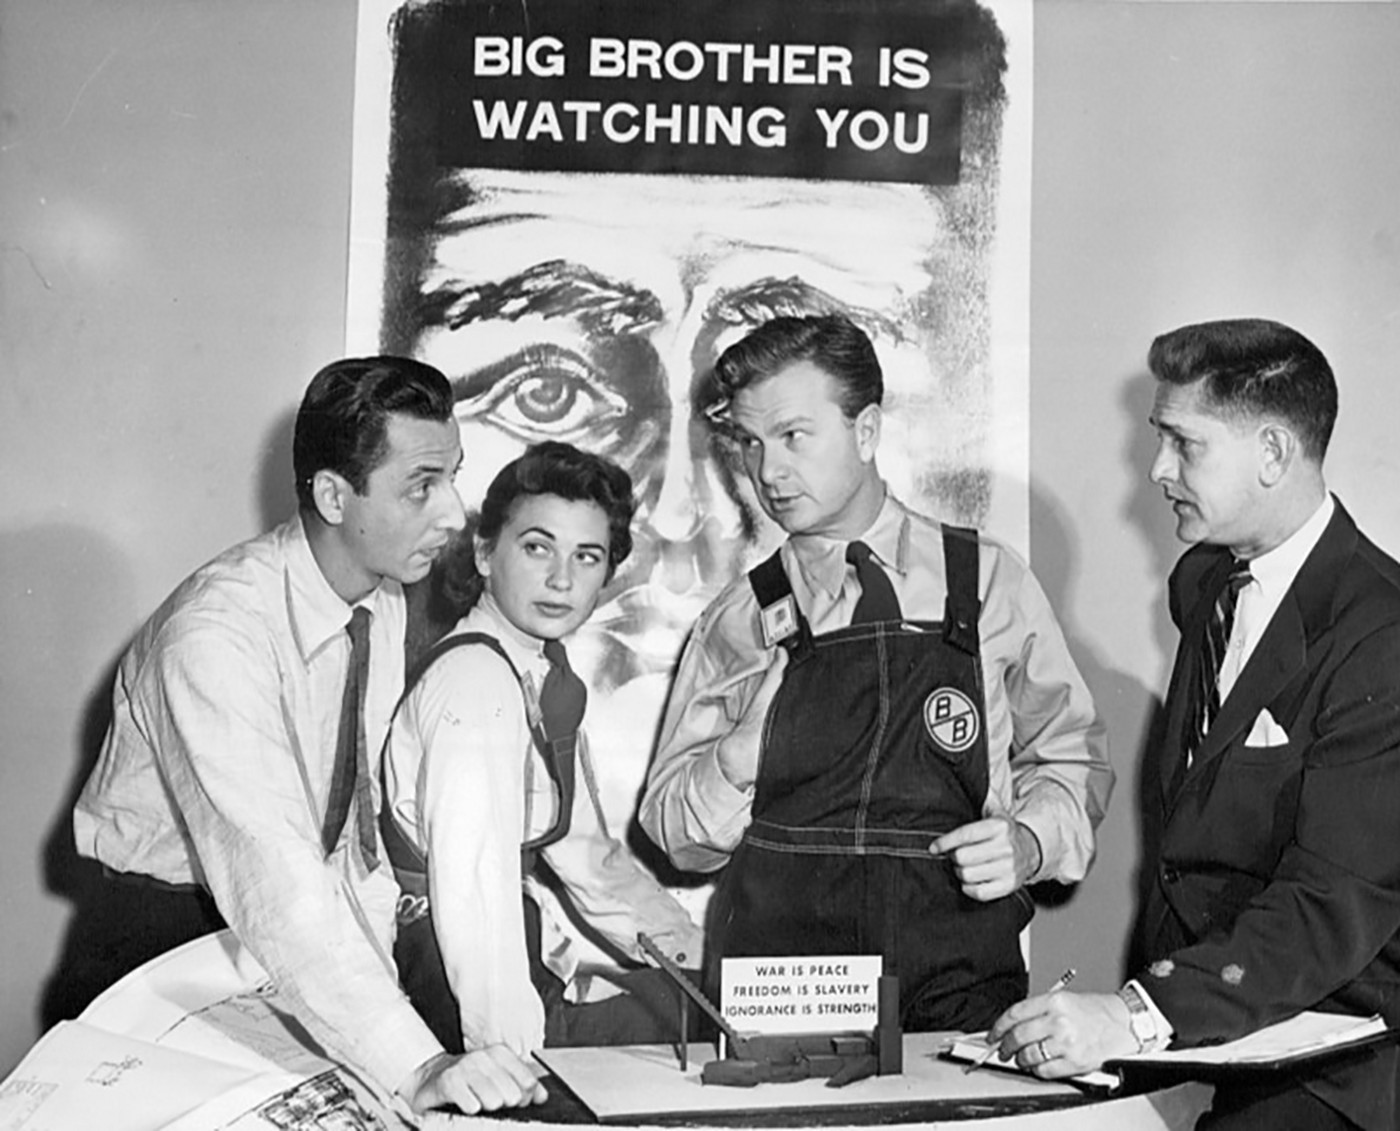 Actors Eddie Albert and Norma Crane, with director Paul Nickell and designer Kim Swados, publicise CBS's 1953 TV play of 1984